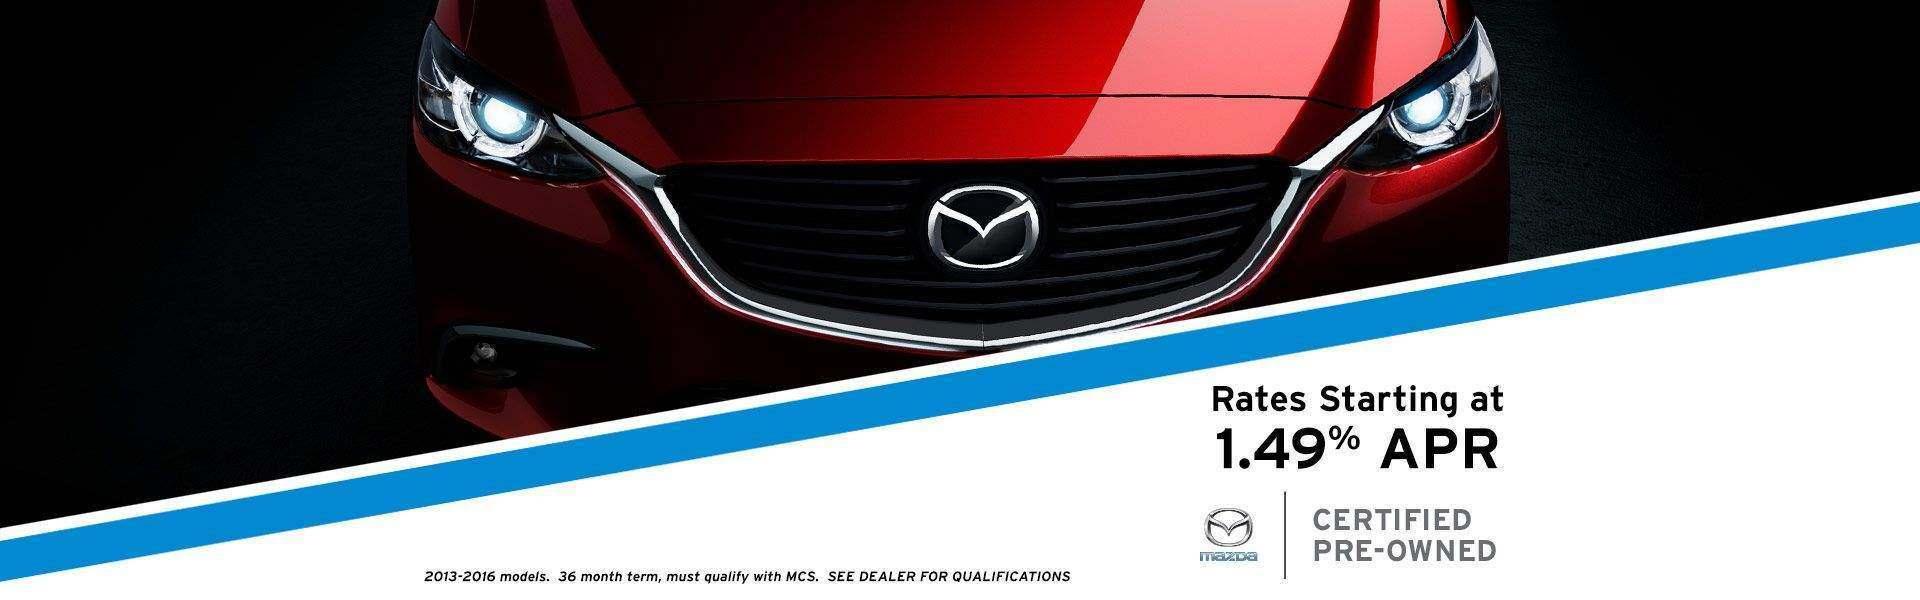 Mazda Certified Pre-Owned